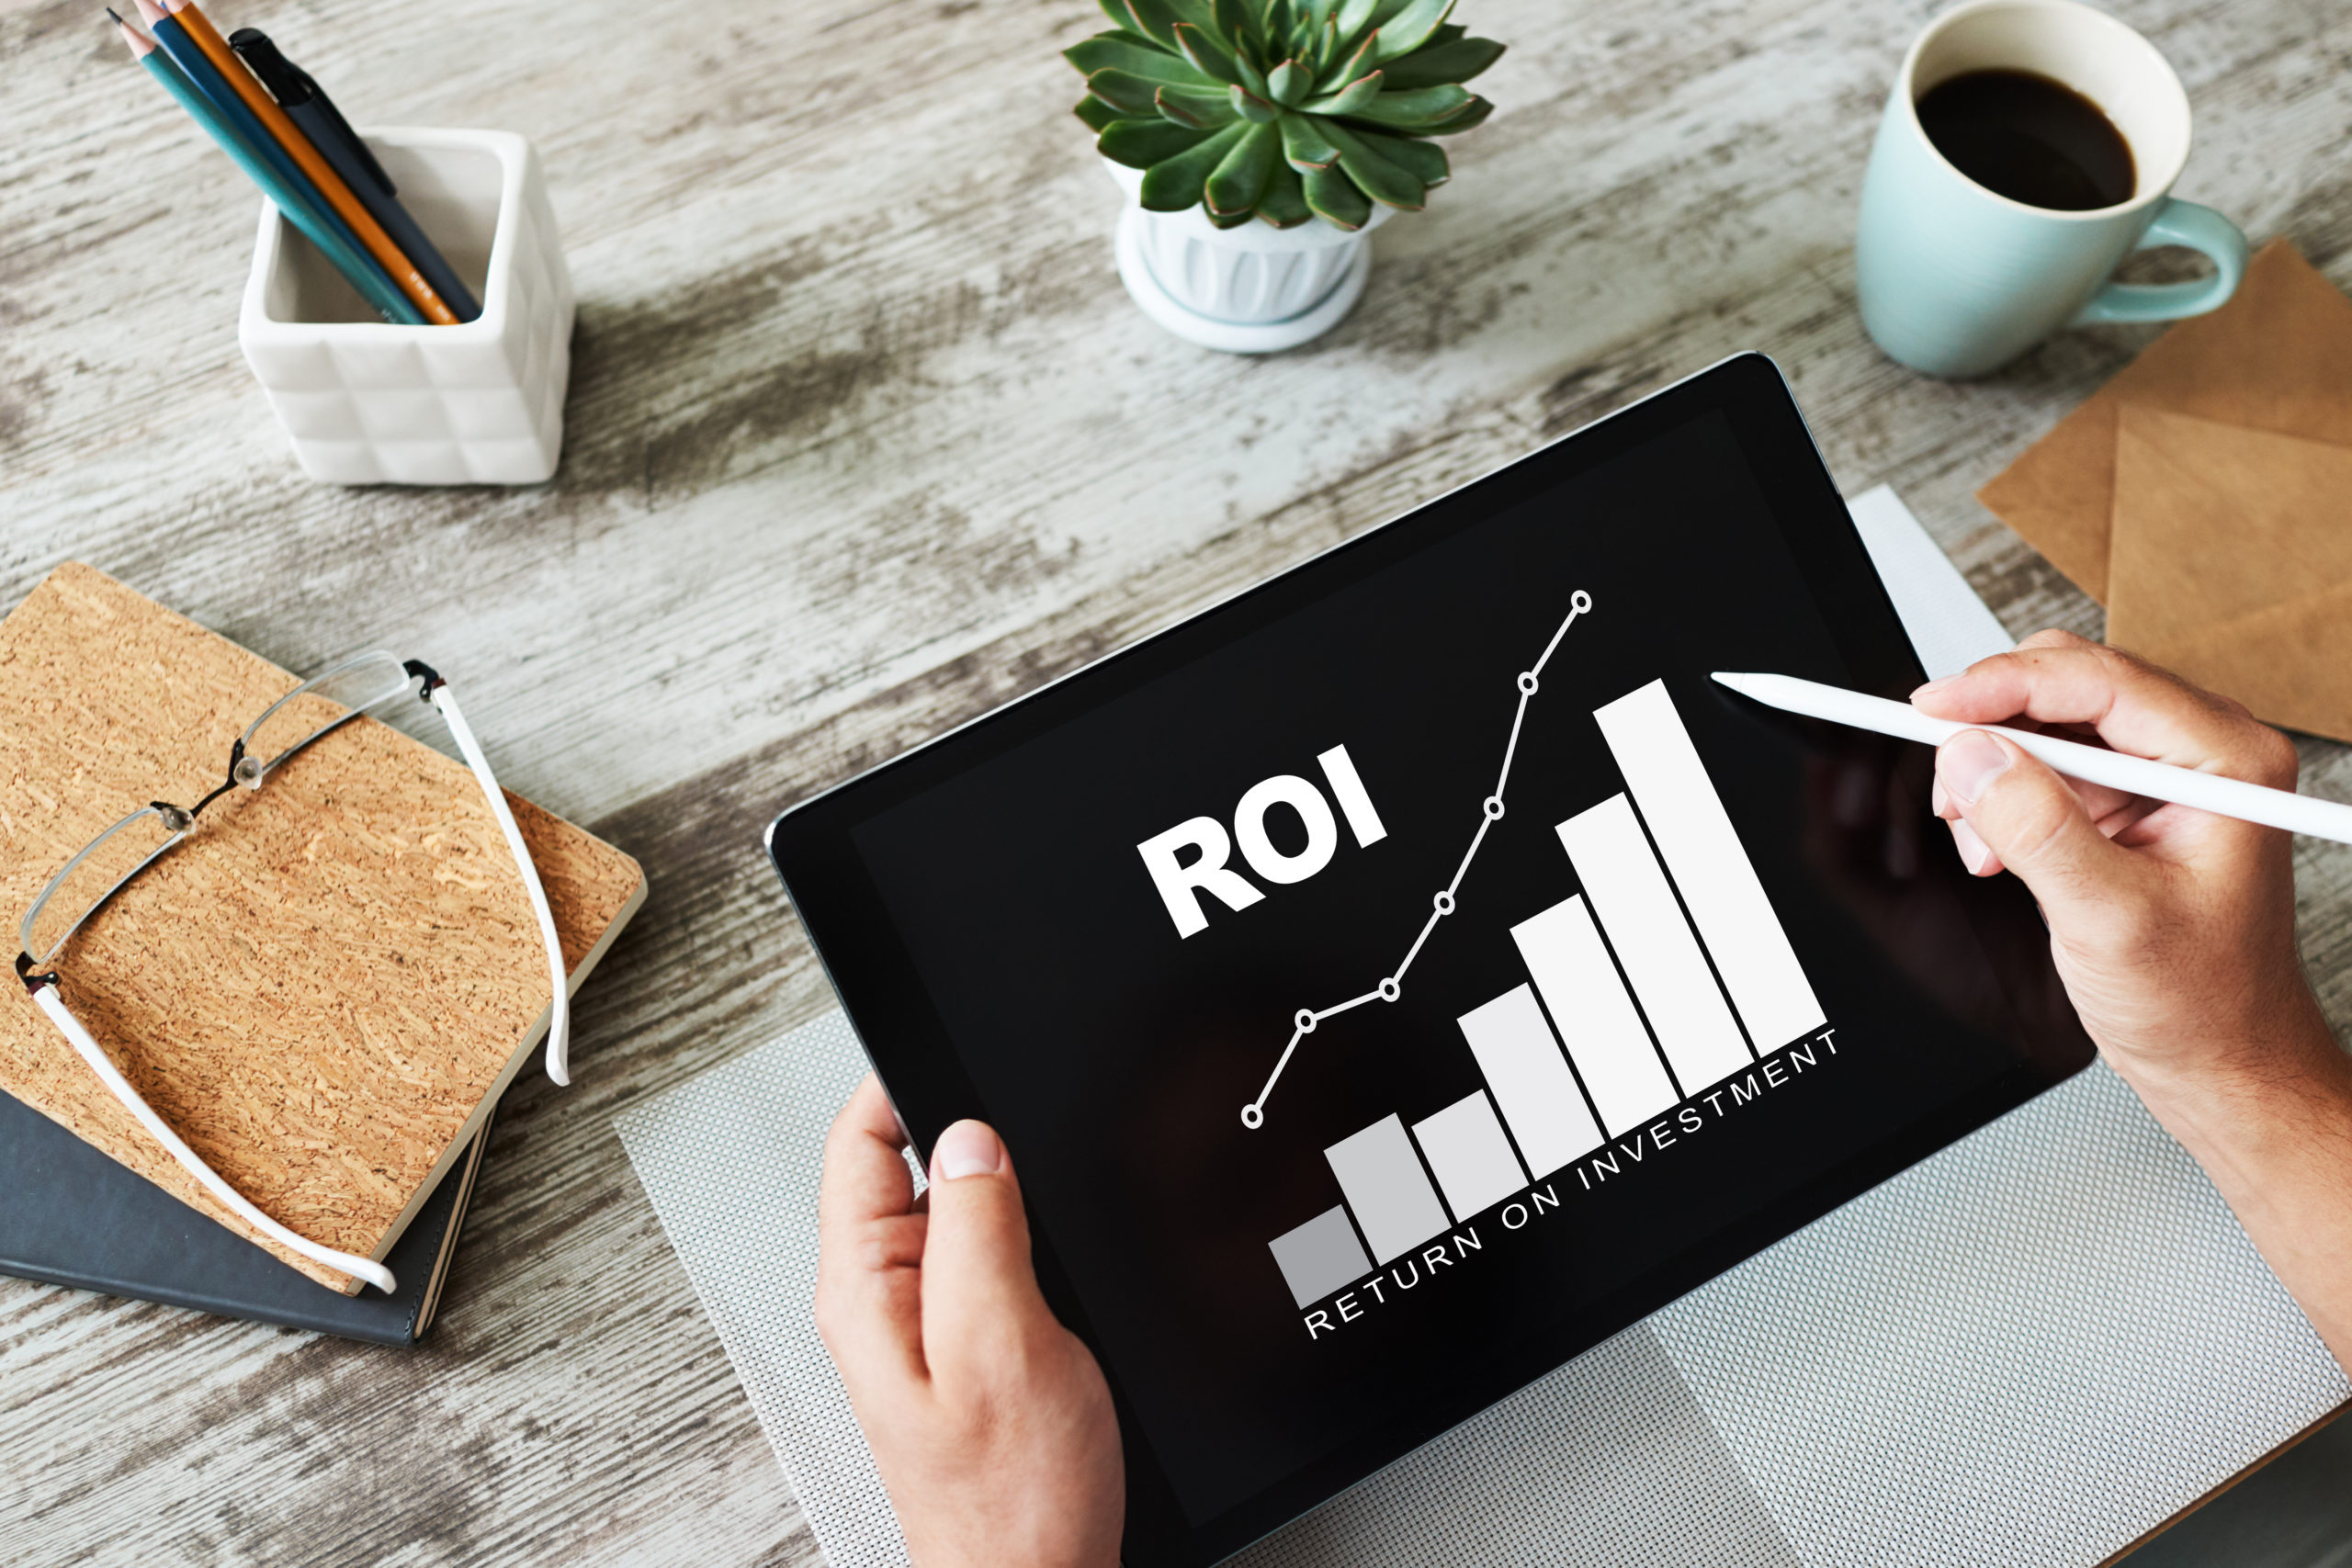 ROI, Return on investment, Business and financial concept, Real estate investment